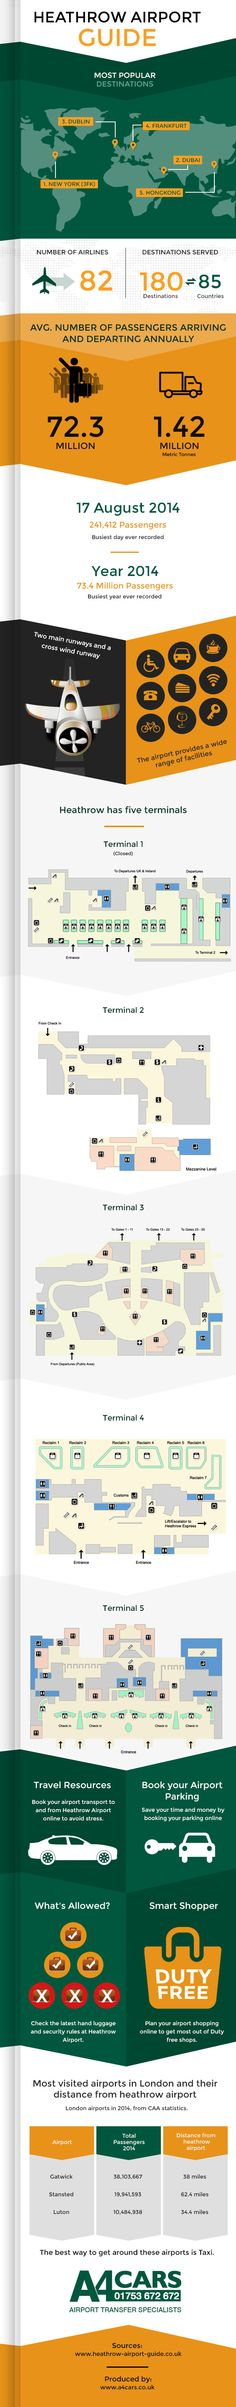 HEATHROW AIRPORT GUIDE